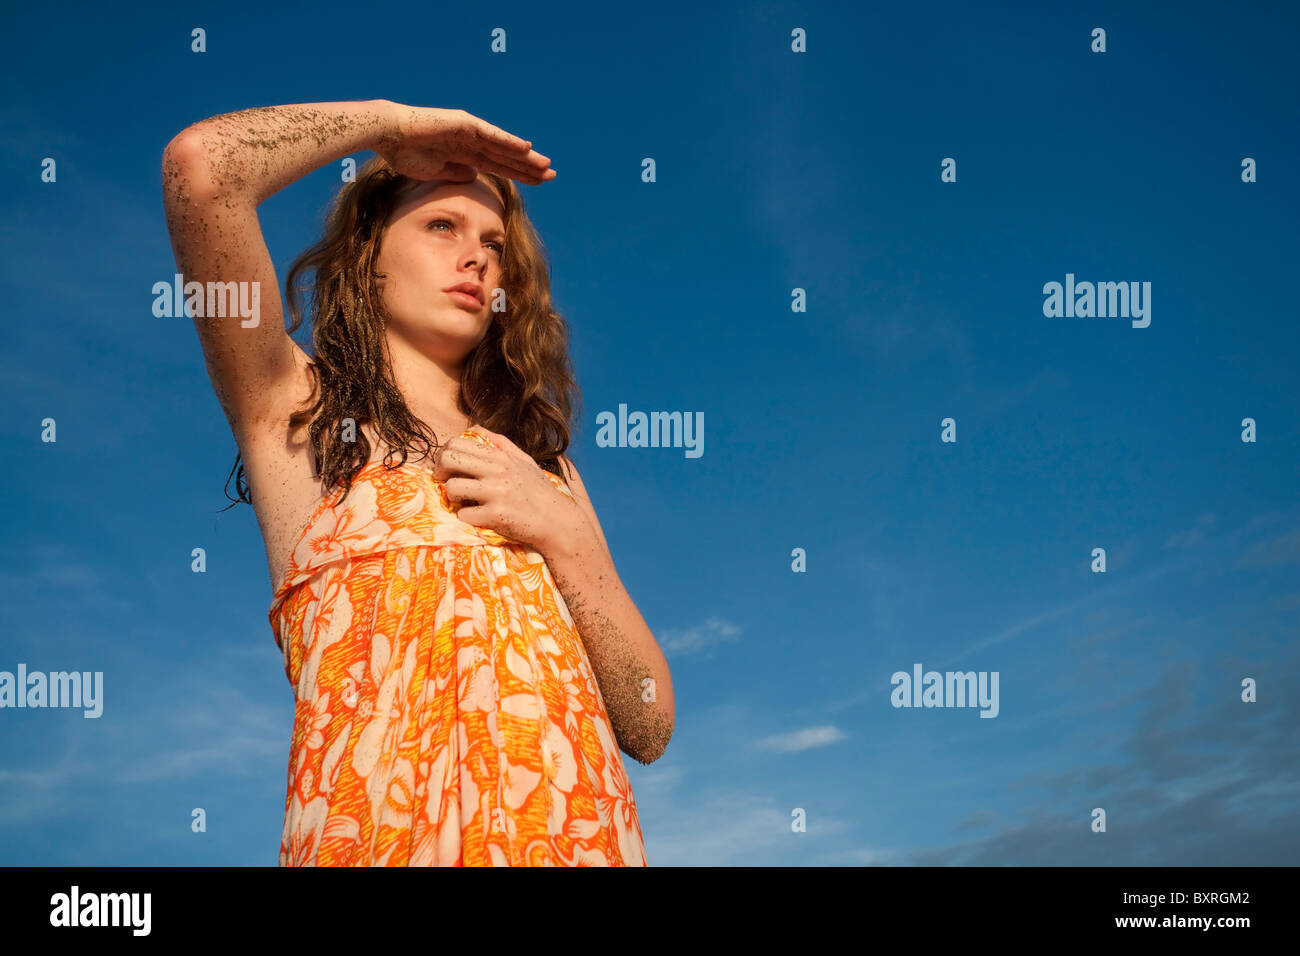 Young woman on beach looking into the distance - Stock Image